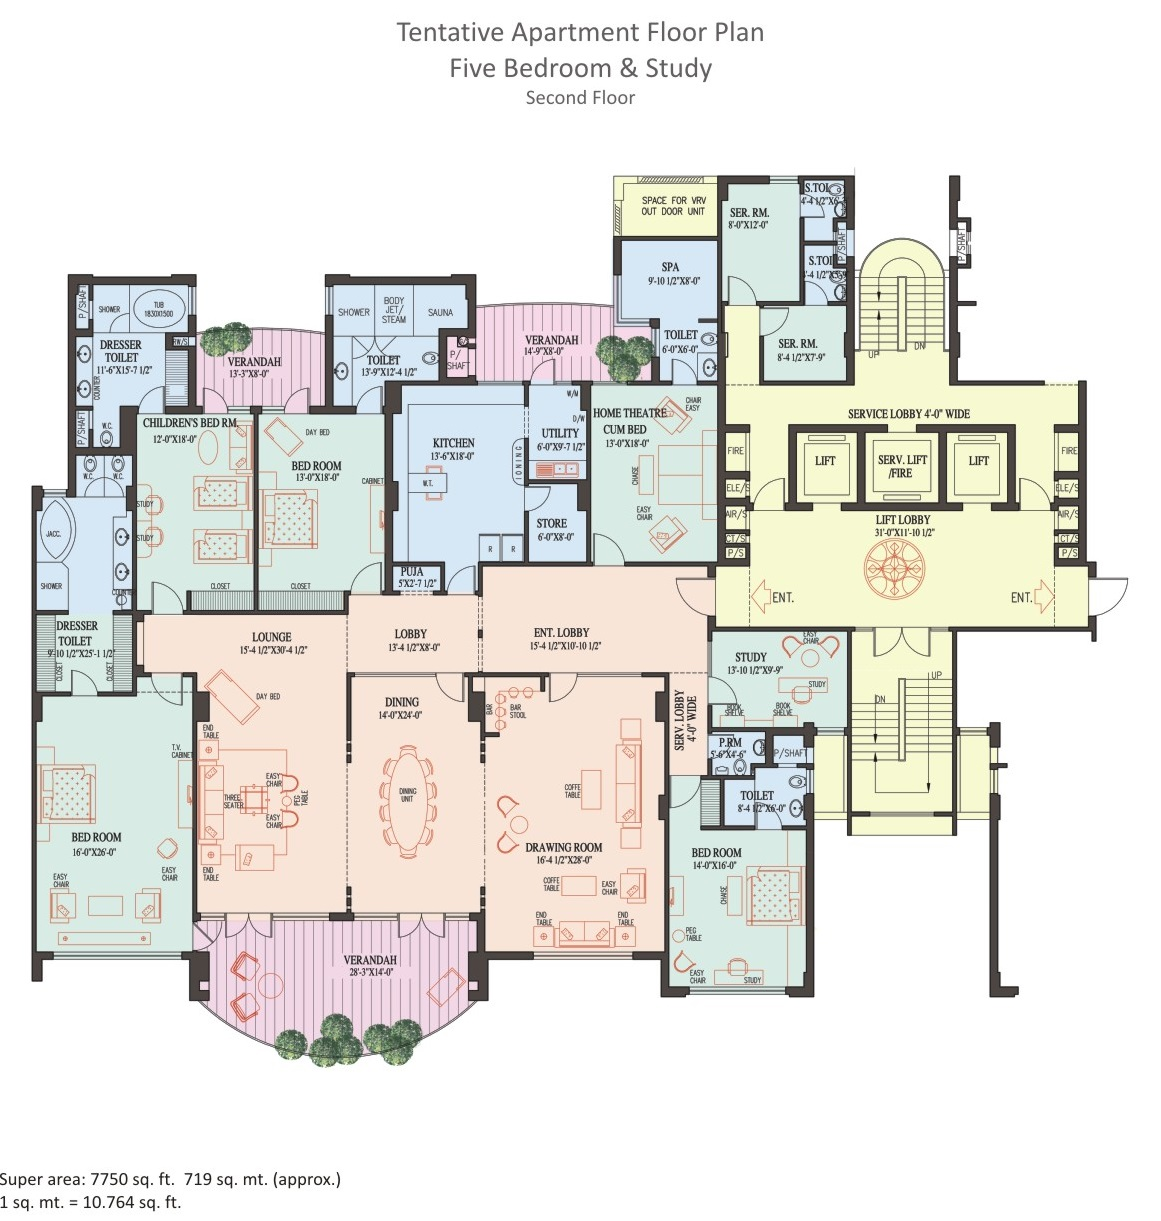 5 BHK Apartment - 2nd Floor